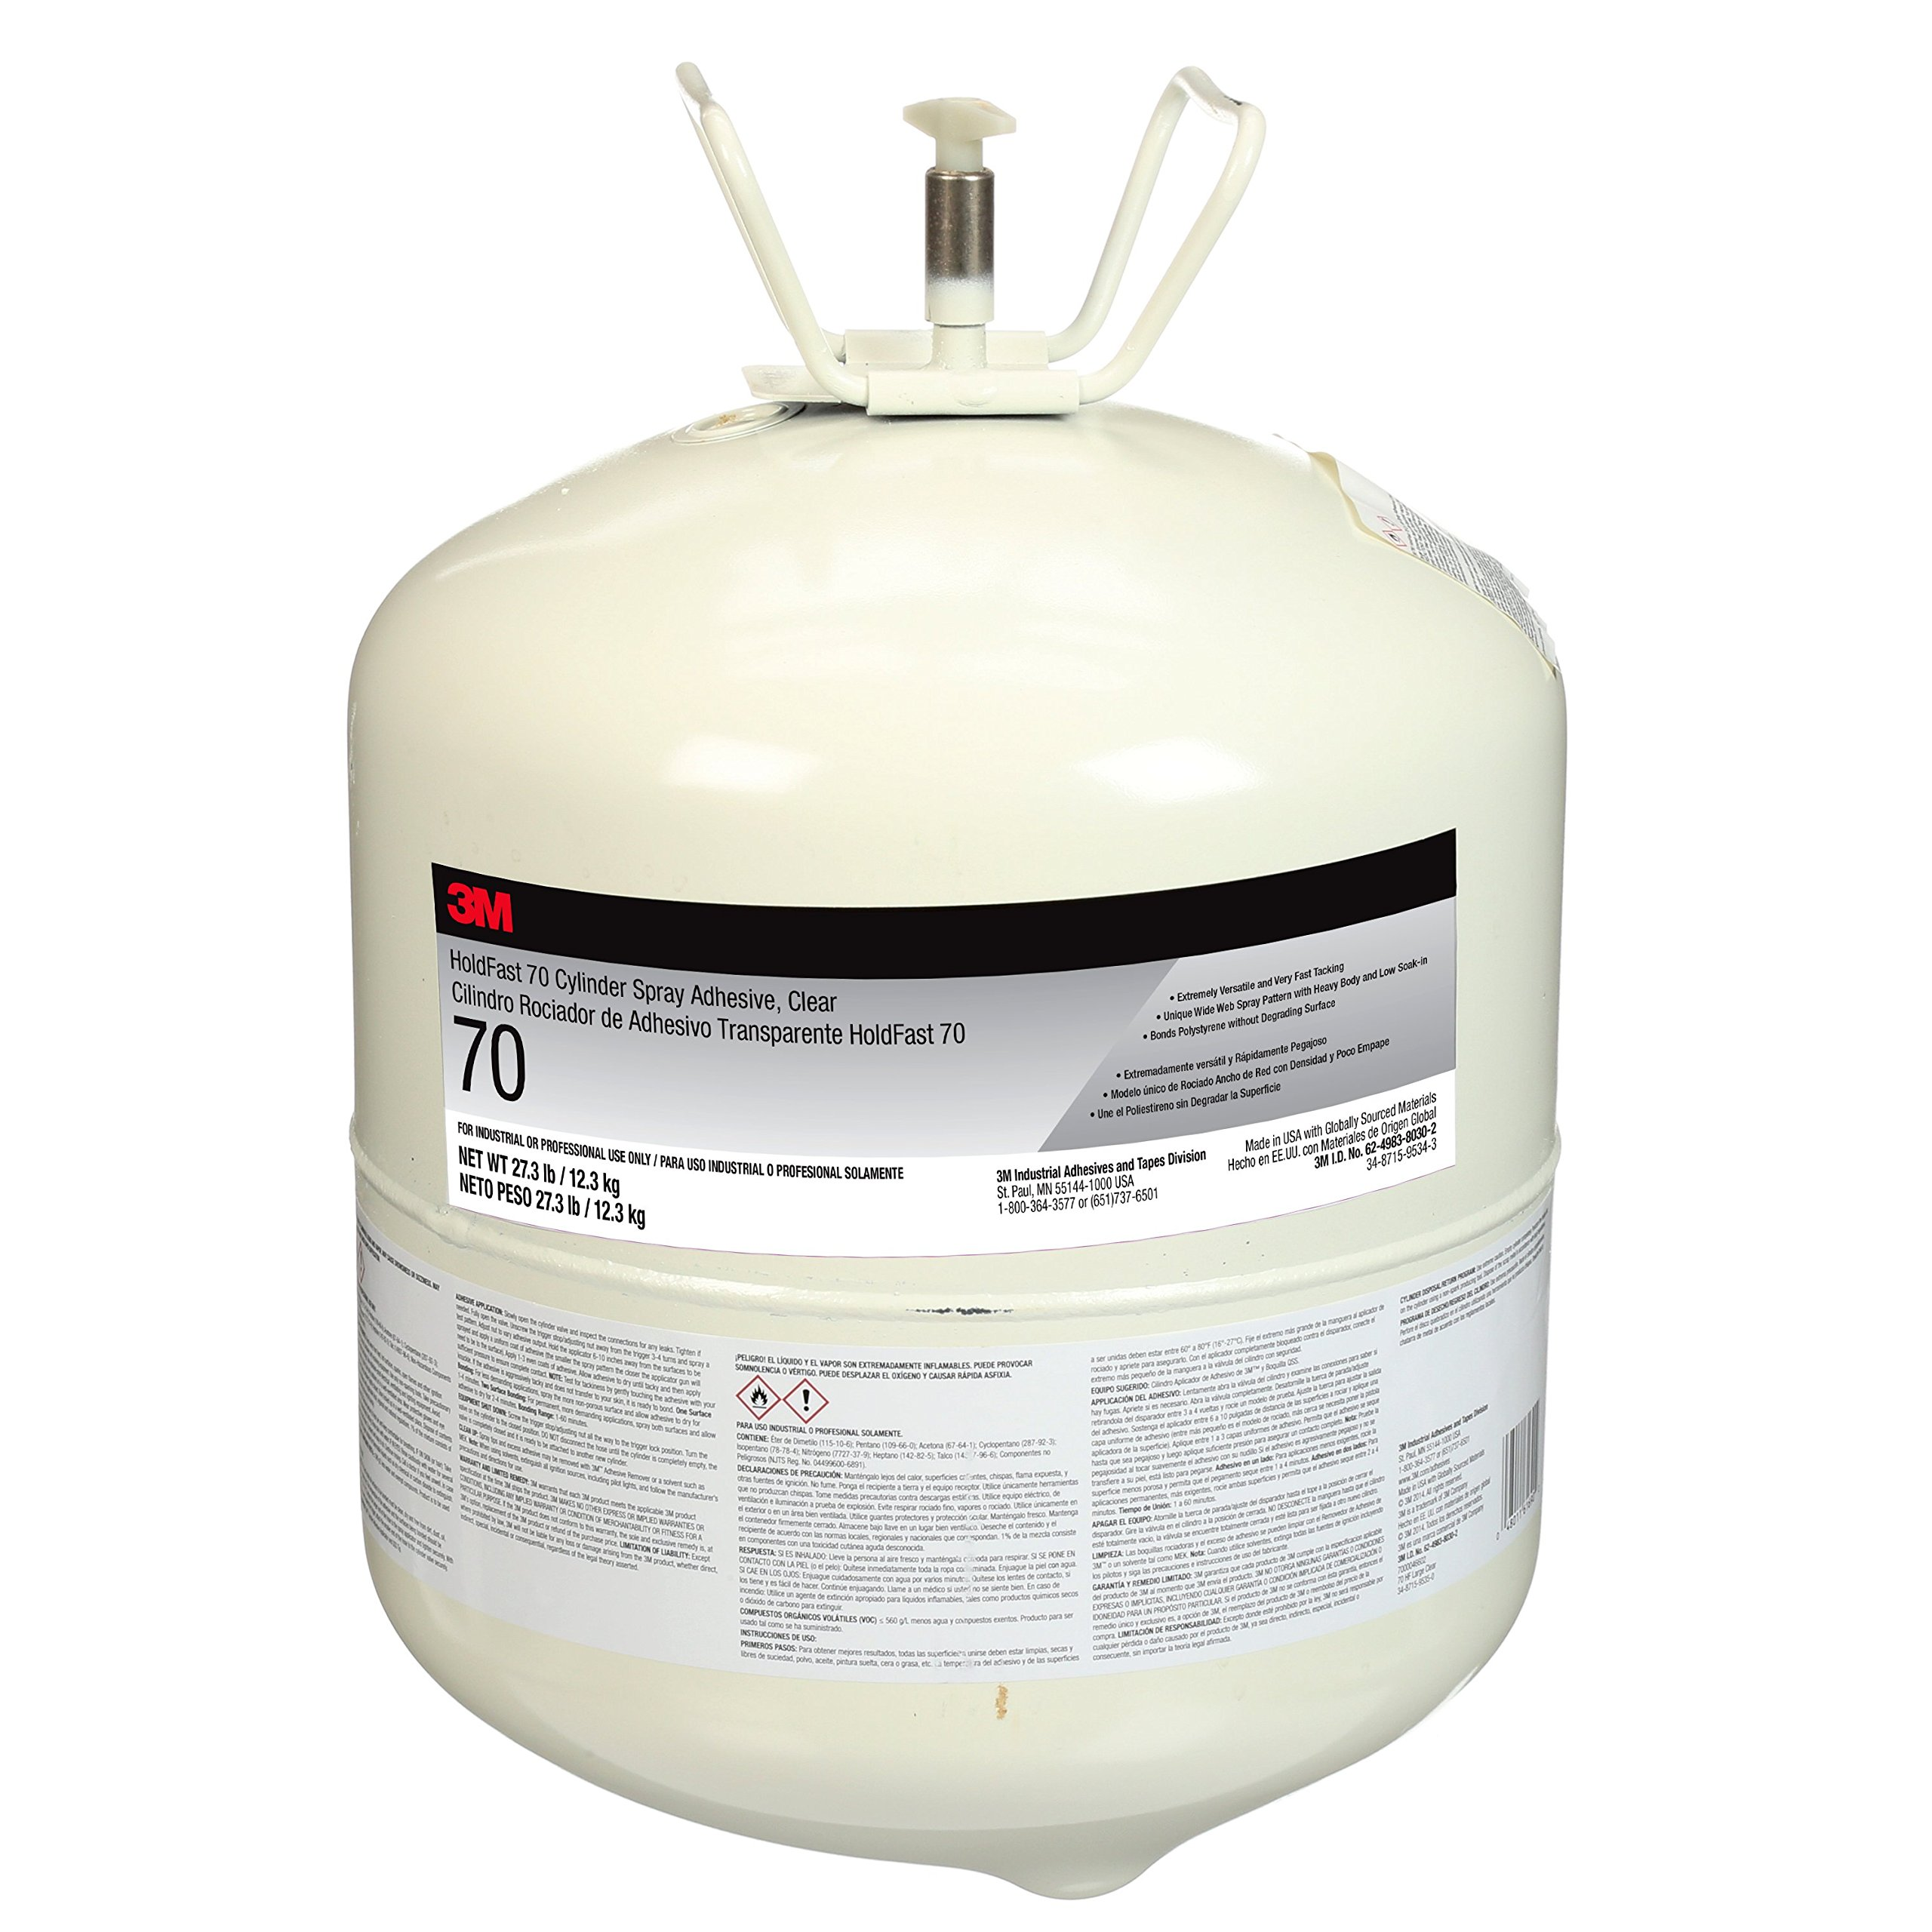 3M HoldFast 70 Cylinder Spray Adhesive, Large Cylinder, 27.3 lb. Net Weight, Clear